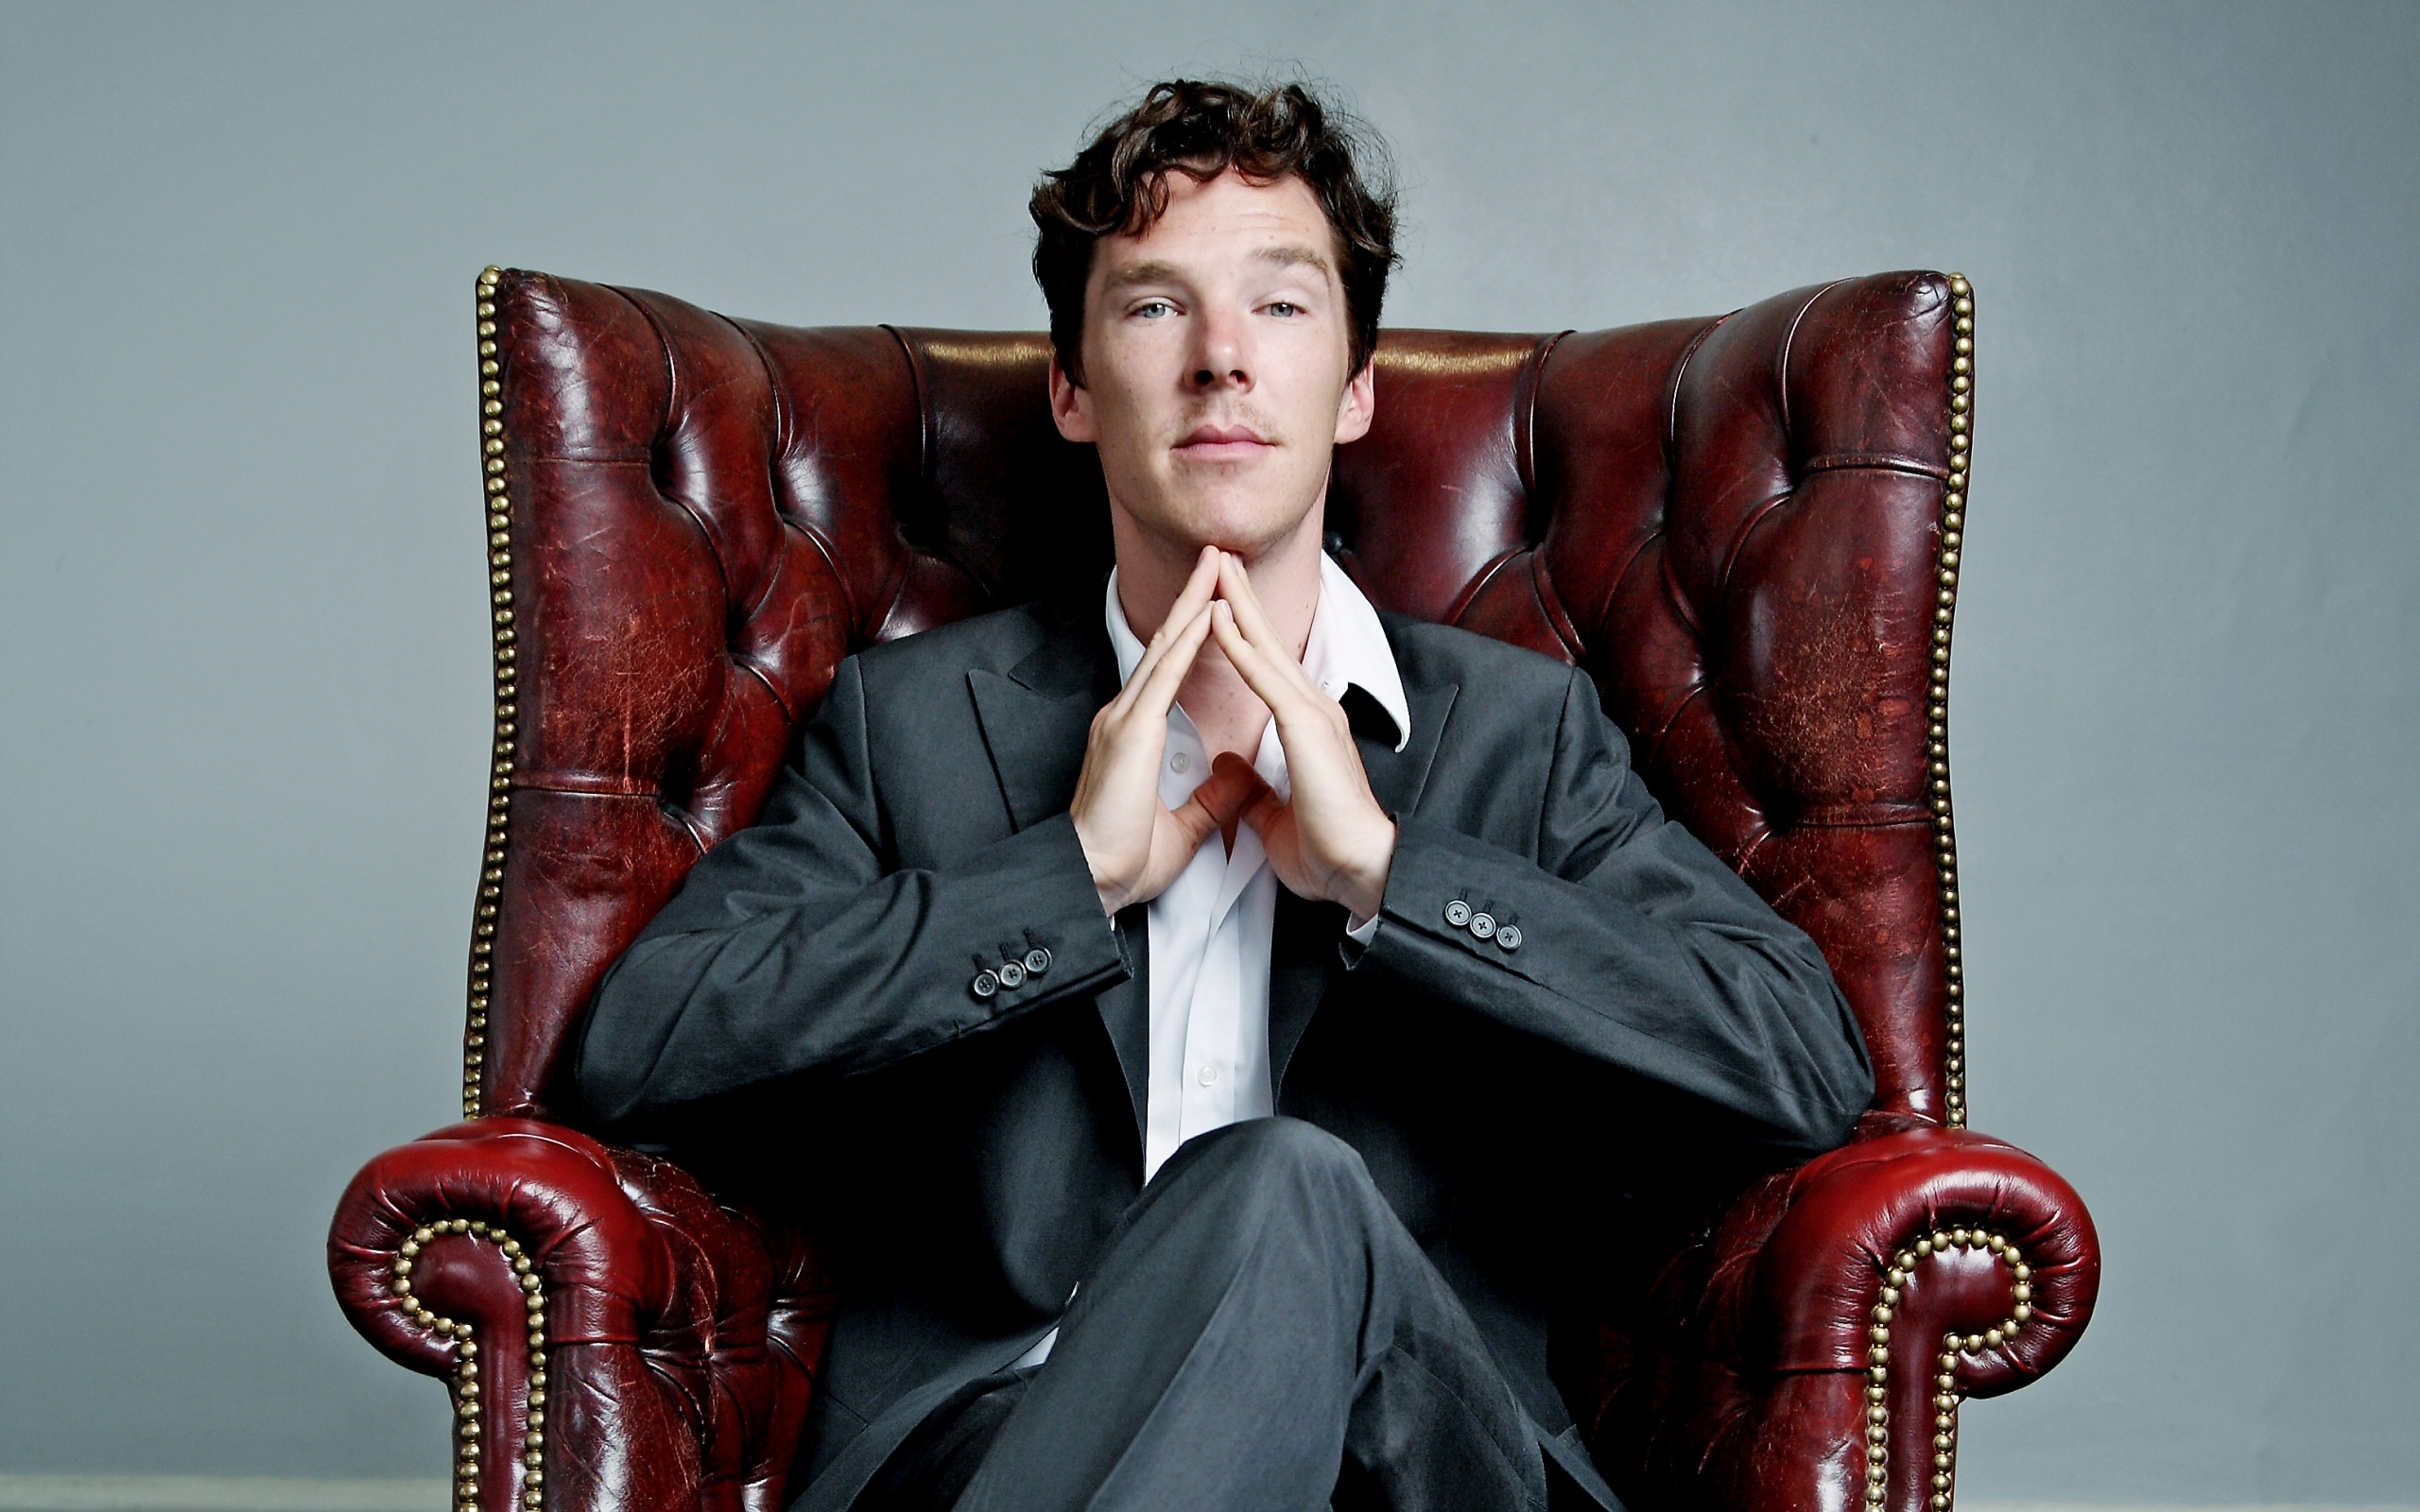 Benedict Cumberbatch Wallpapers, Pictures, Image